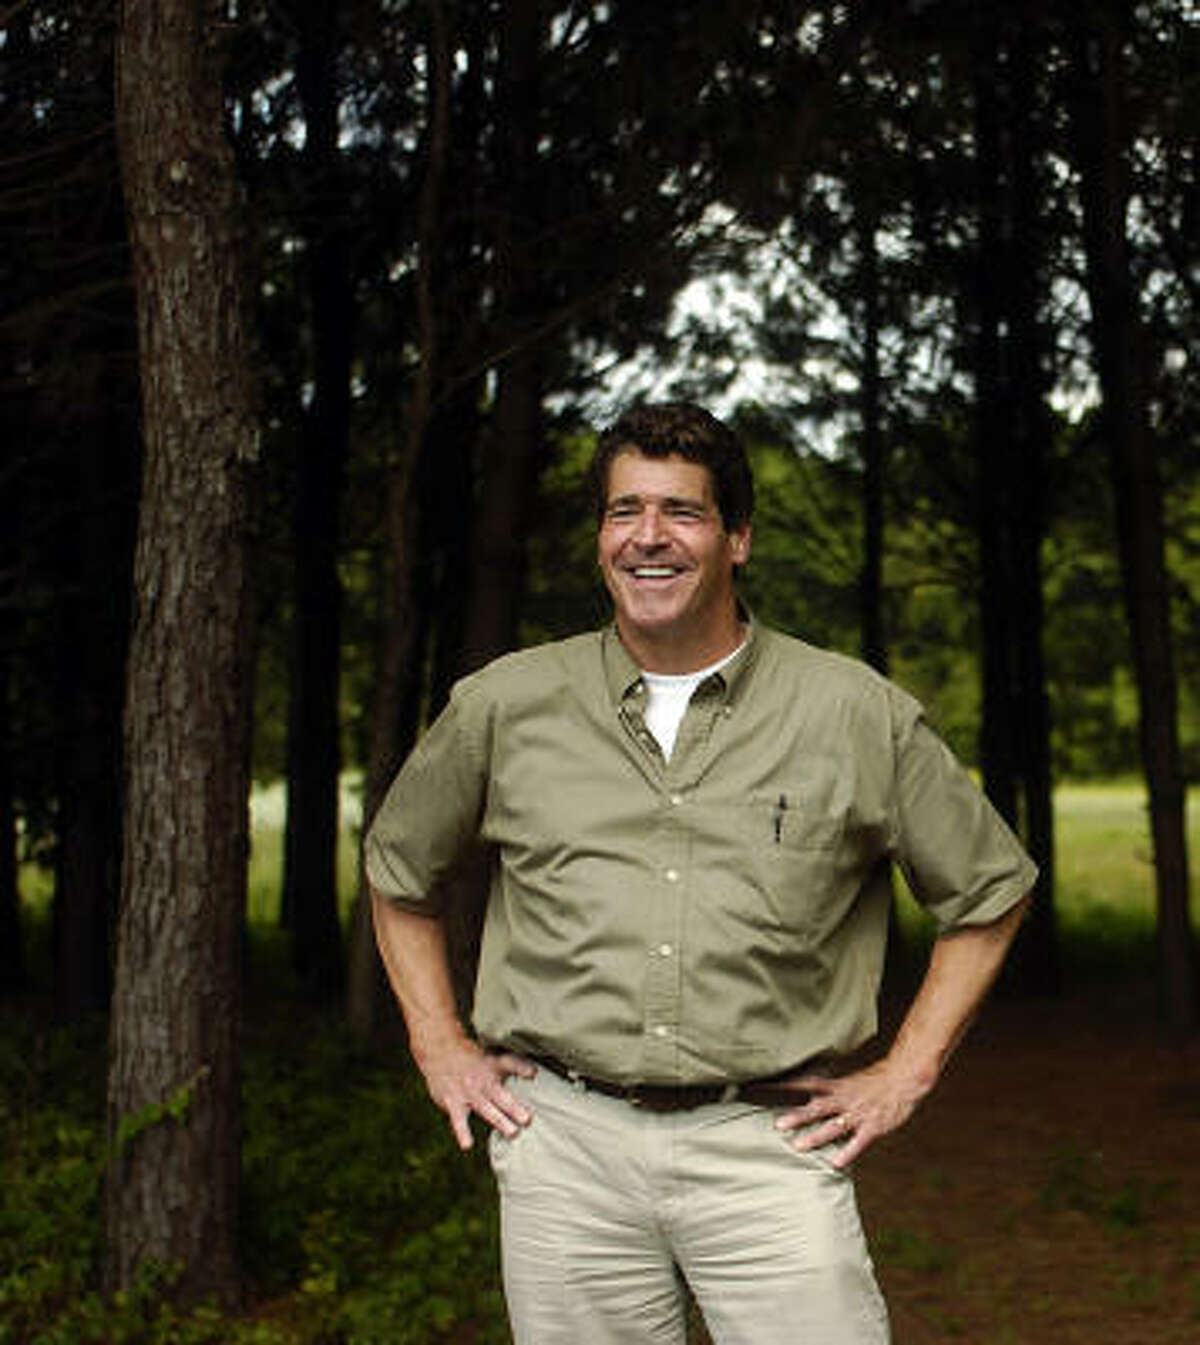 Developer Terry Ward plans to turn 30 acres near Chappell Hill into the greater Houston area's first certified green burial ground.